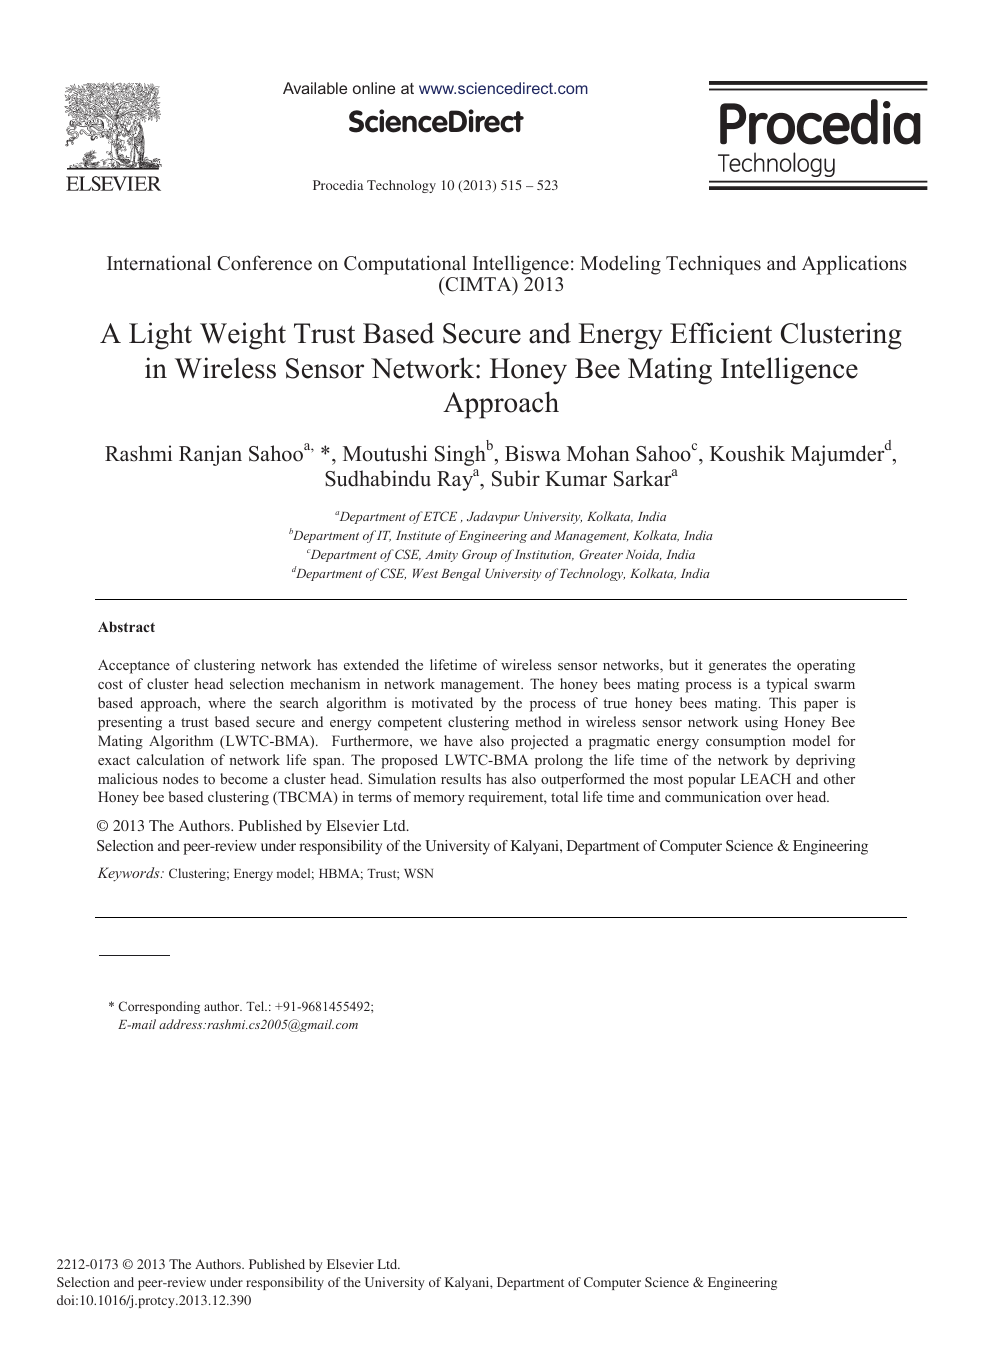 A Light Weight Trust based Secure and Energy Efficient Clustering in